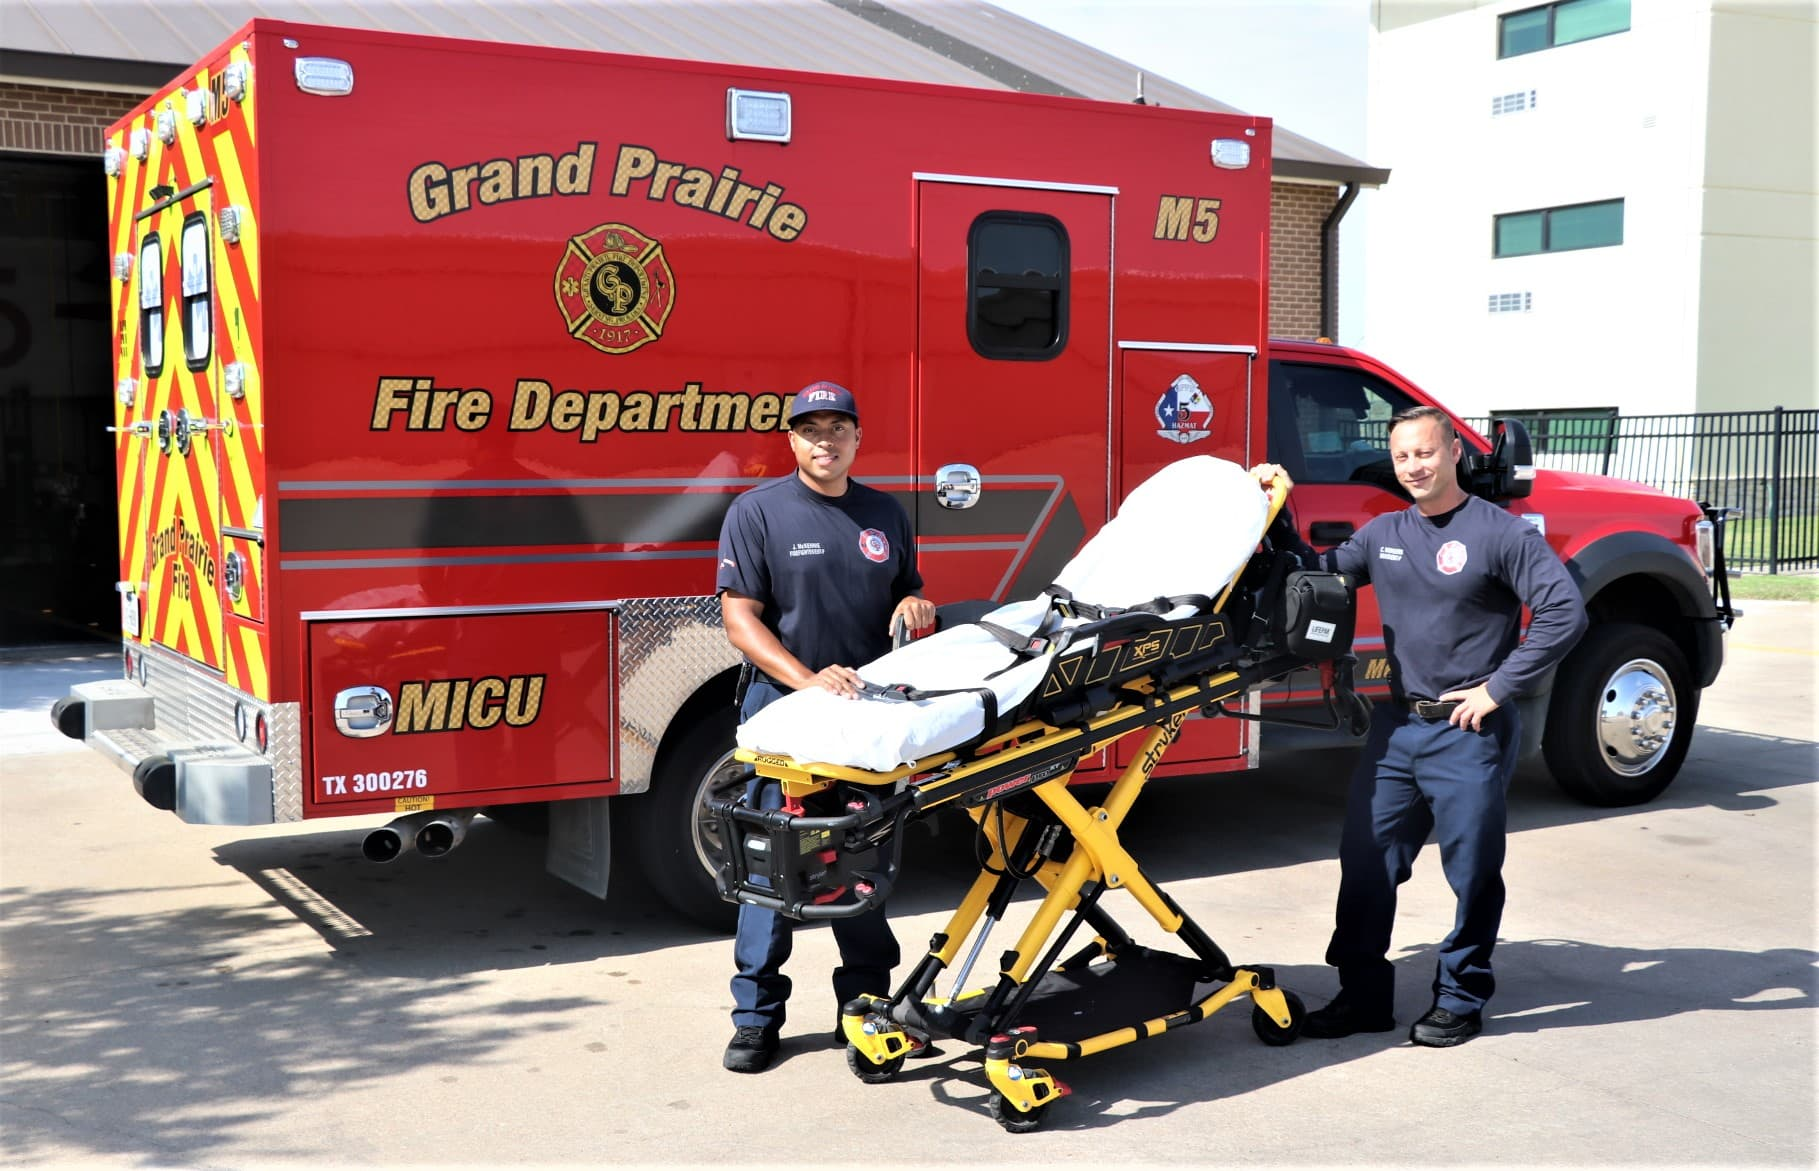 Grand Prairie Fire Department ambulance